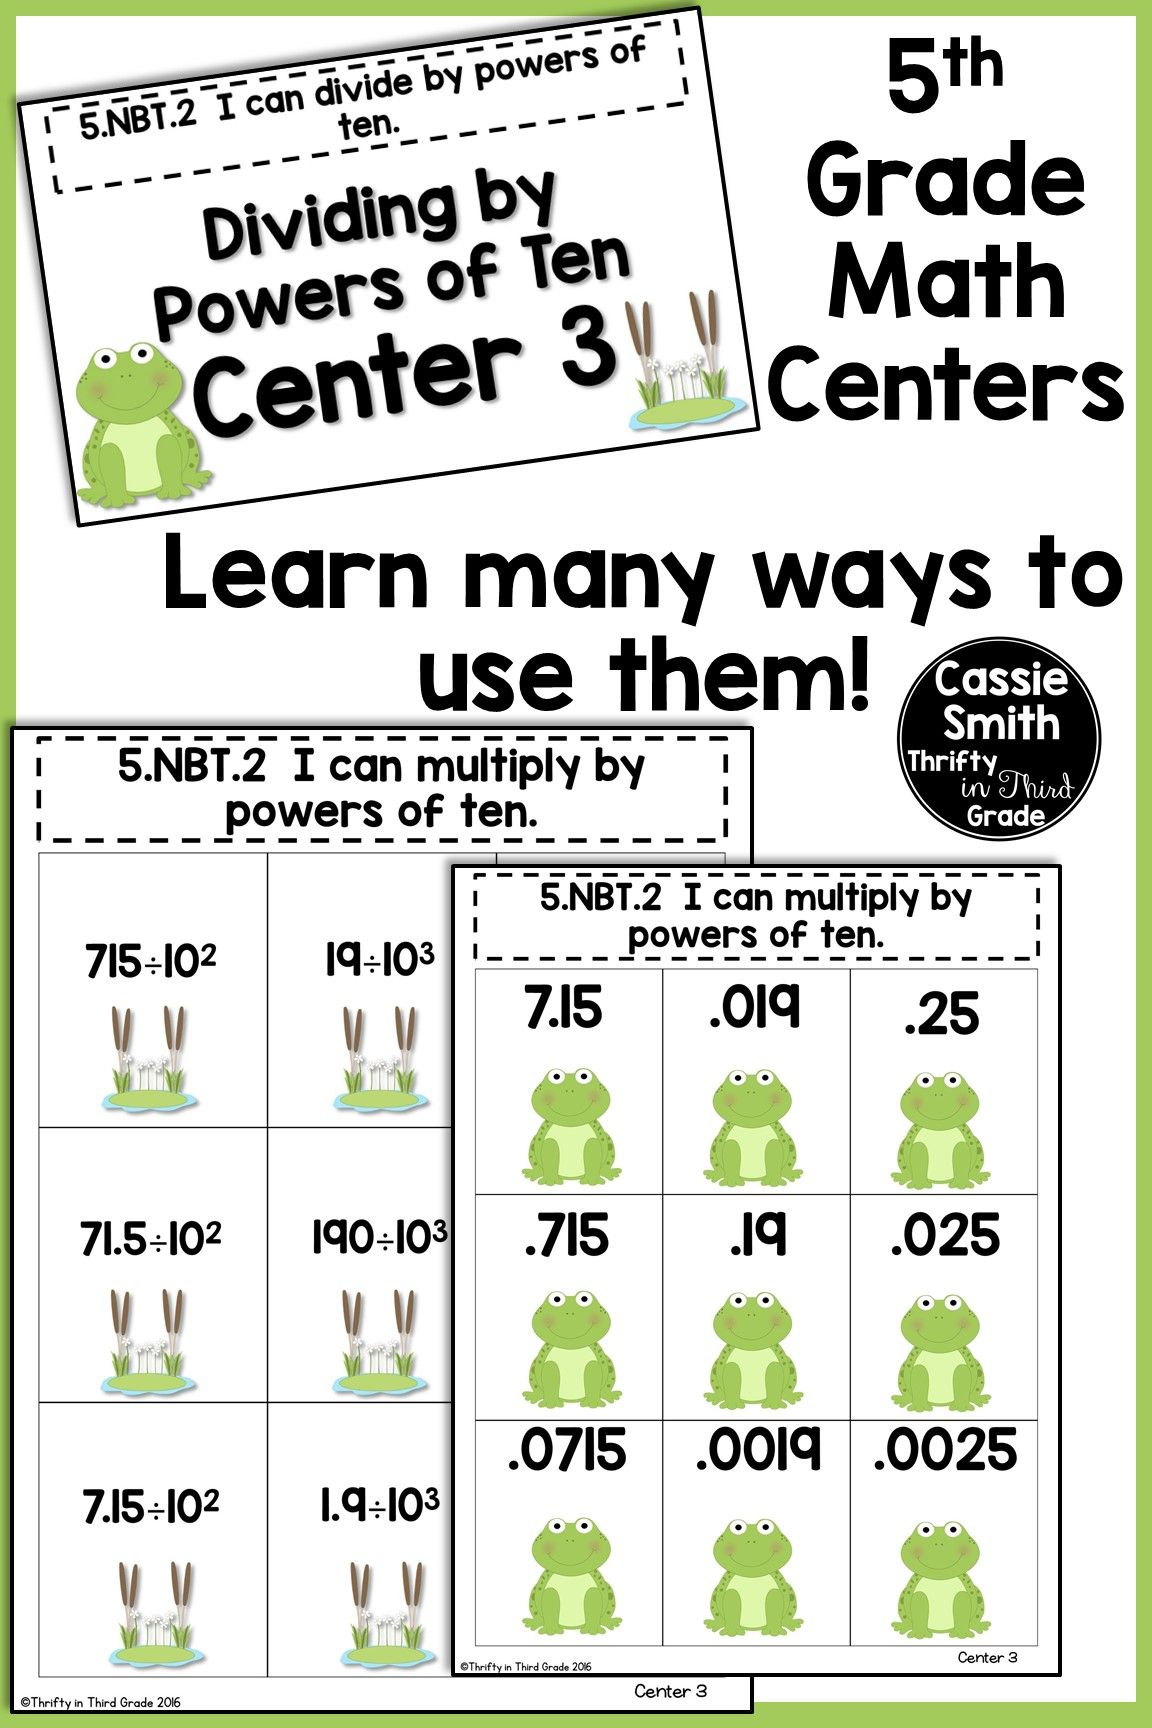 5th Grade Math Centers Covers All 5th Grade Math